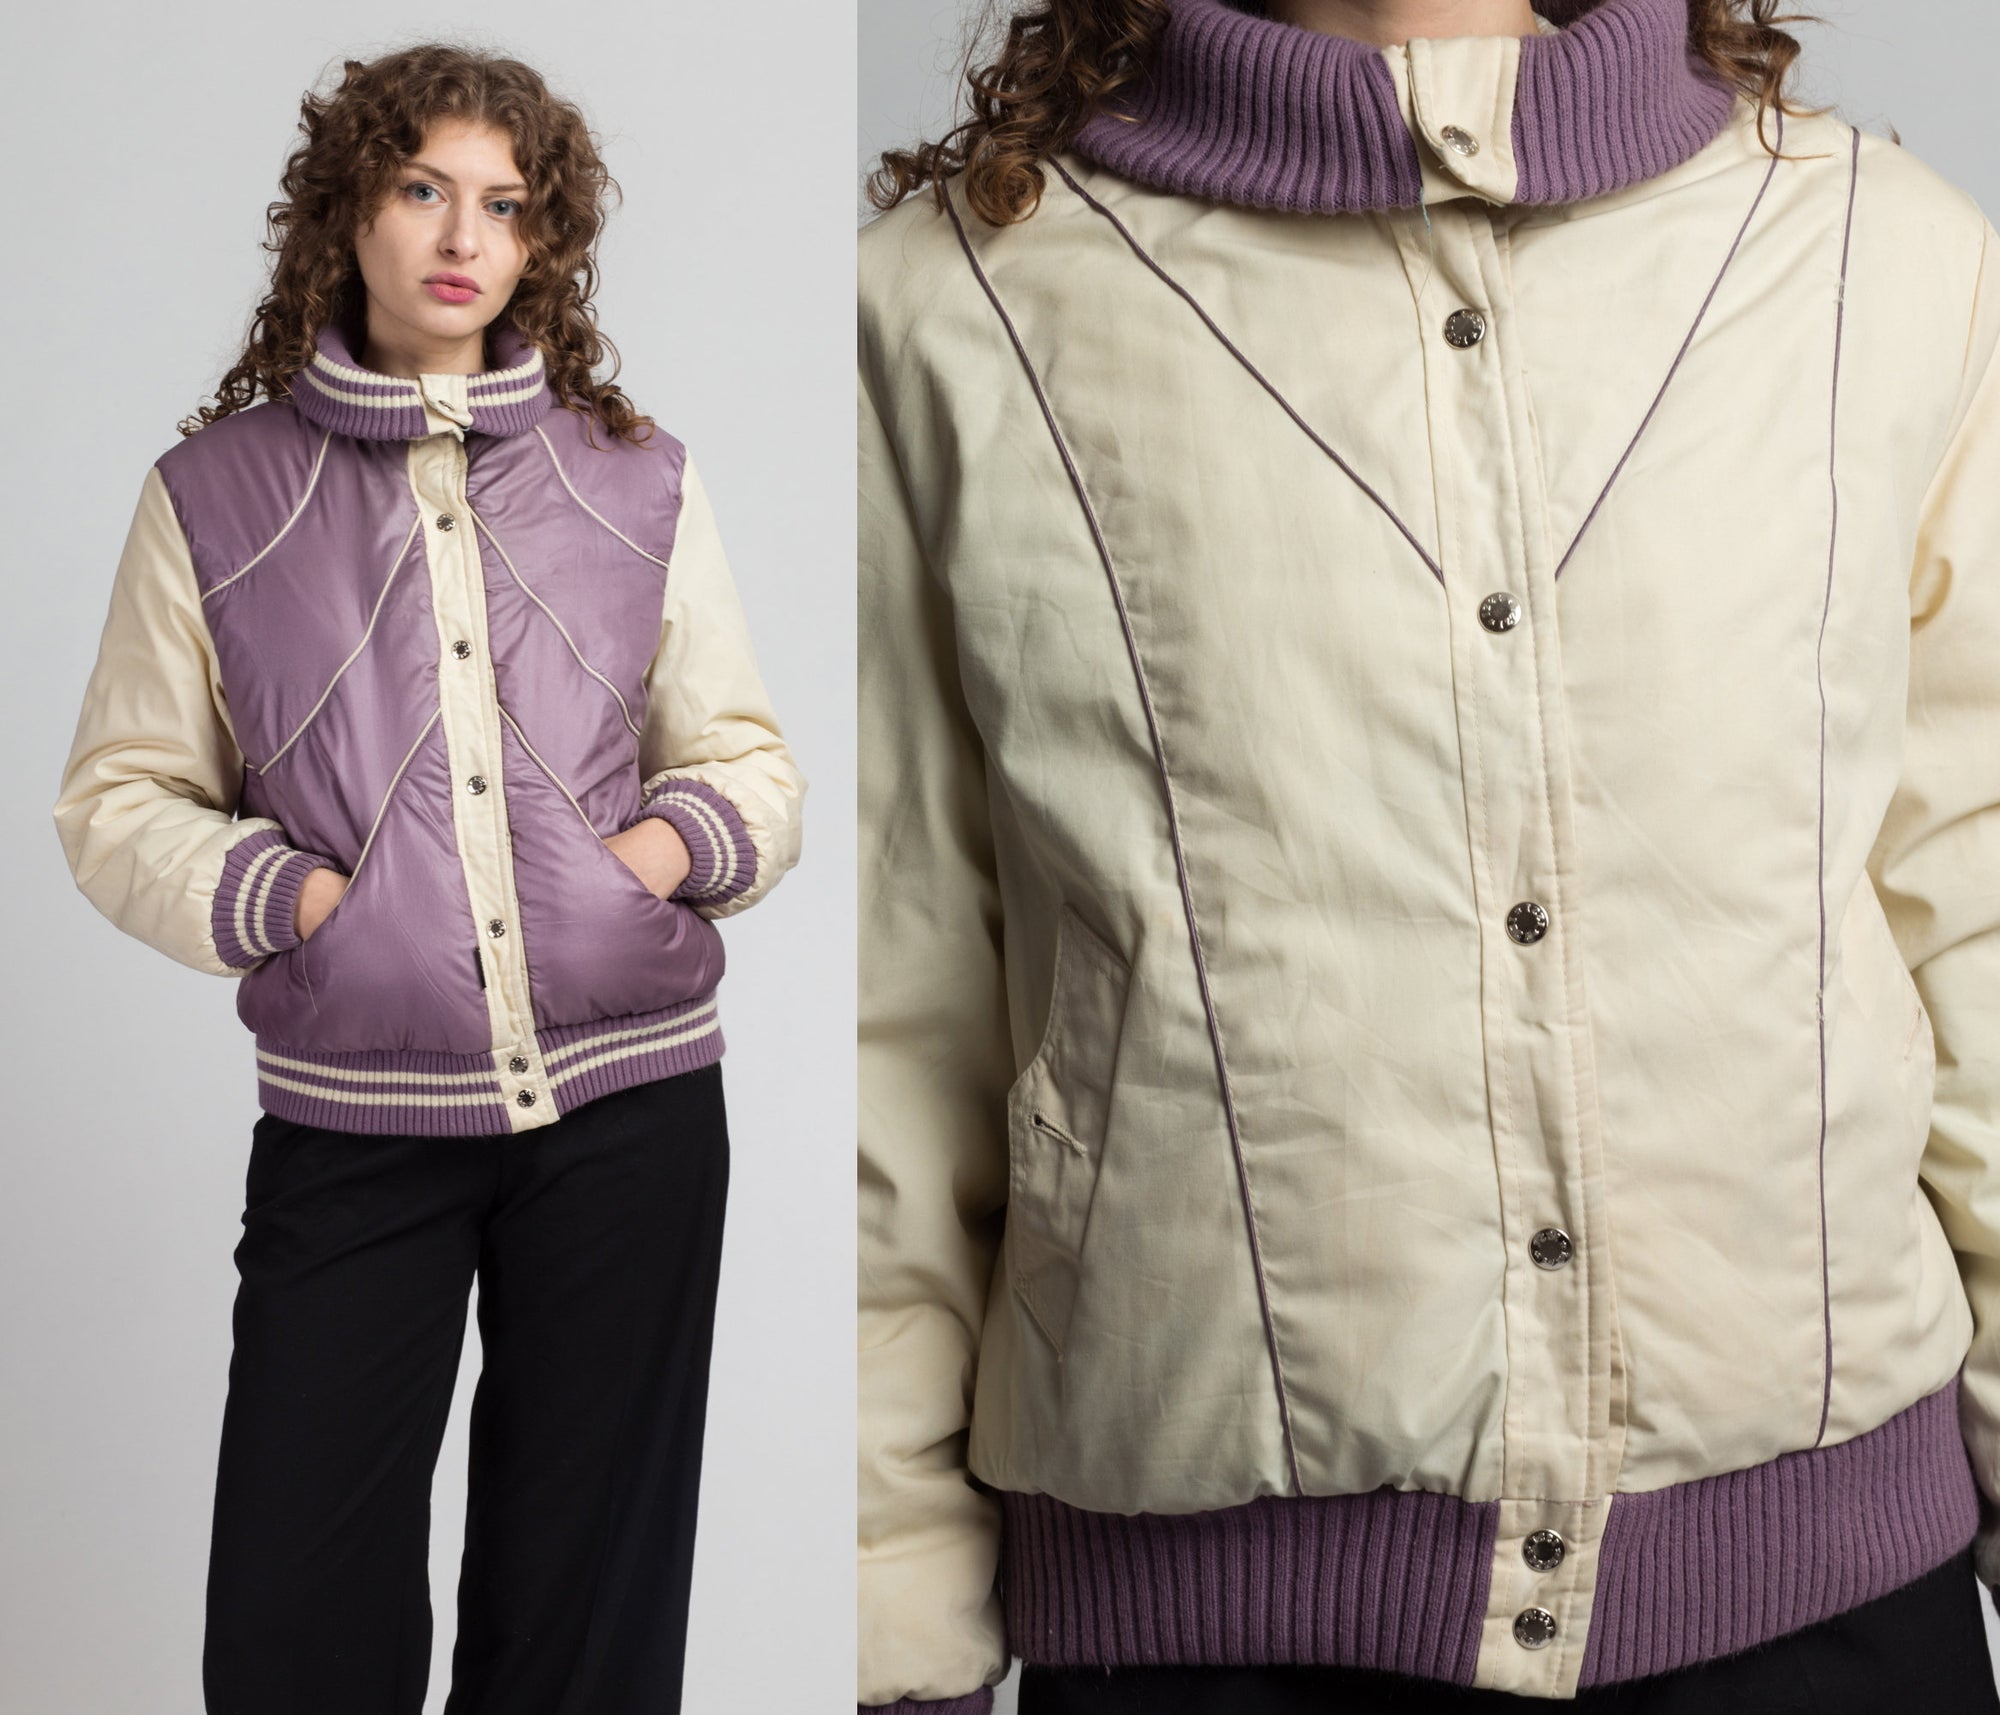 80s Reversible Puffy Bomber Jacket - Medium | Vintage Purple White Chevron Striped Winter Ski Coat